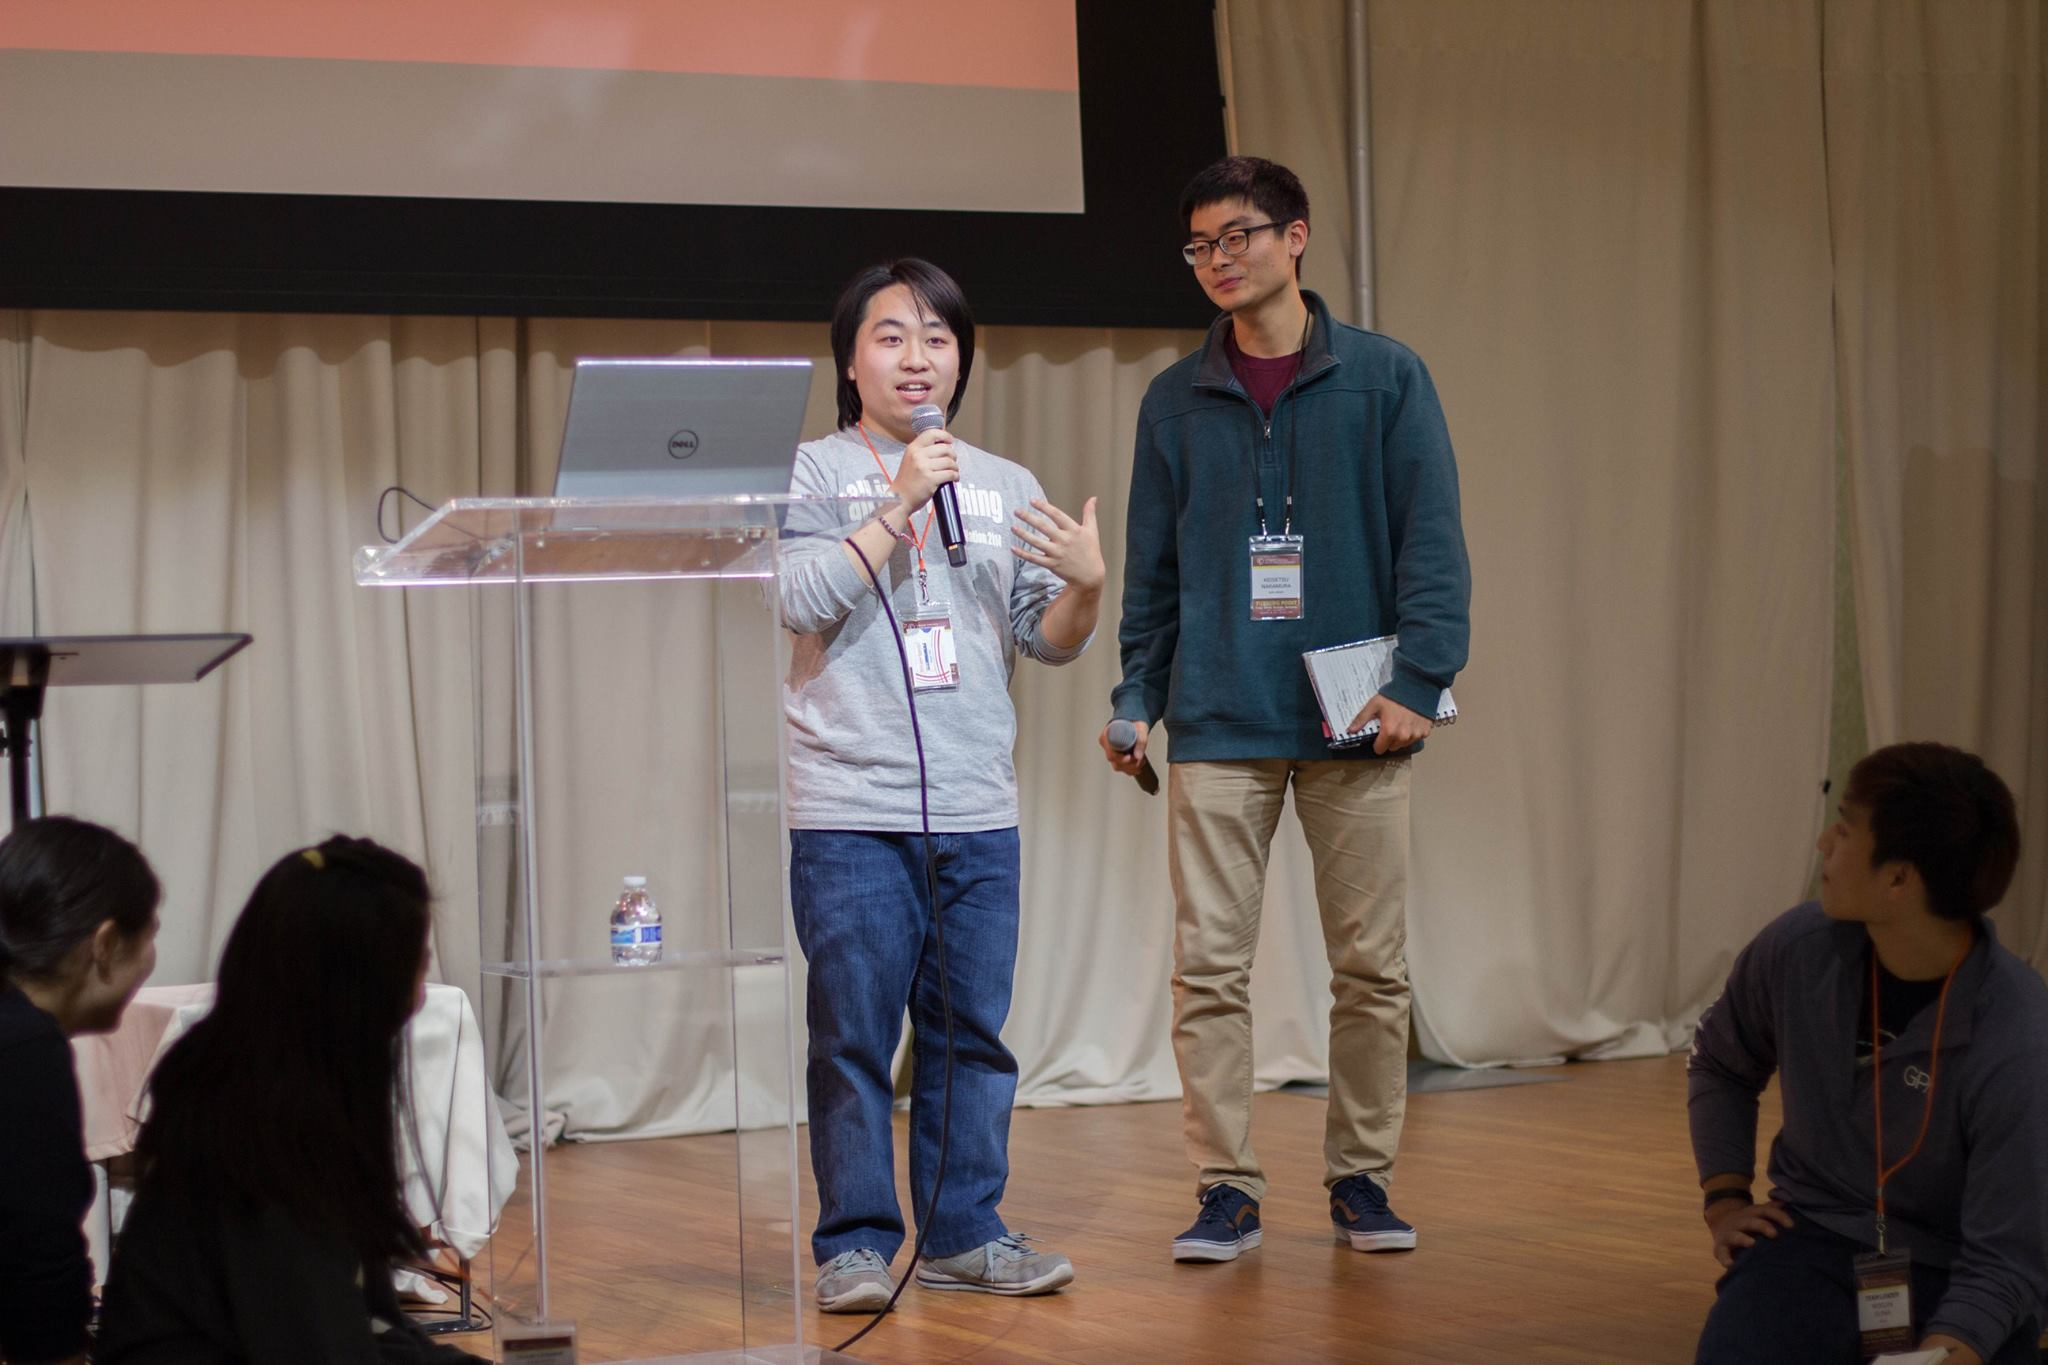 Takafumi (left) and his (then) Vice President, Keisetsu Nakamura (right), give a presentation on the activities at CARP NJIT.